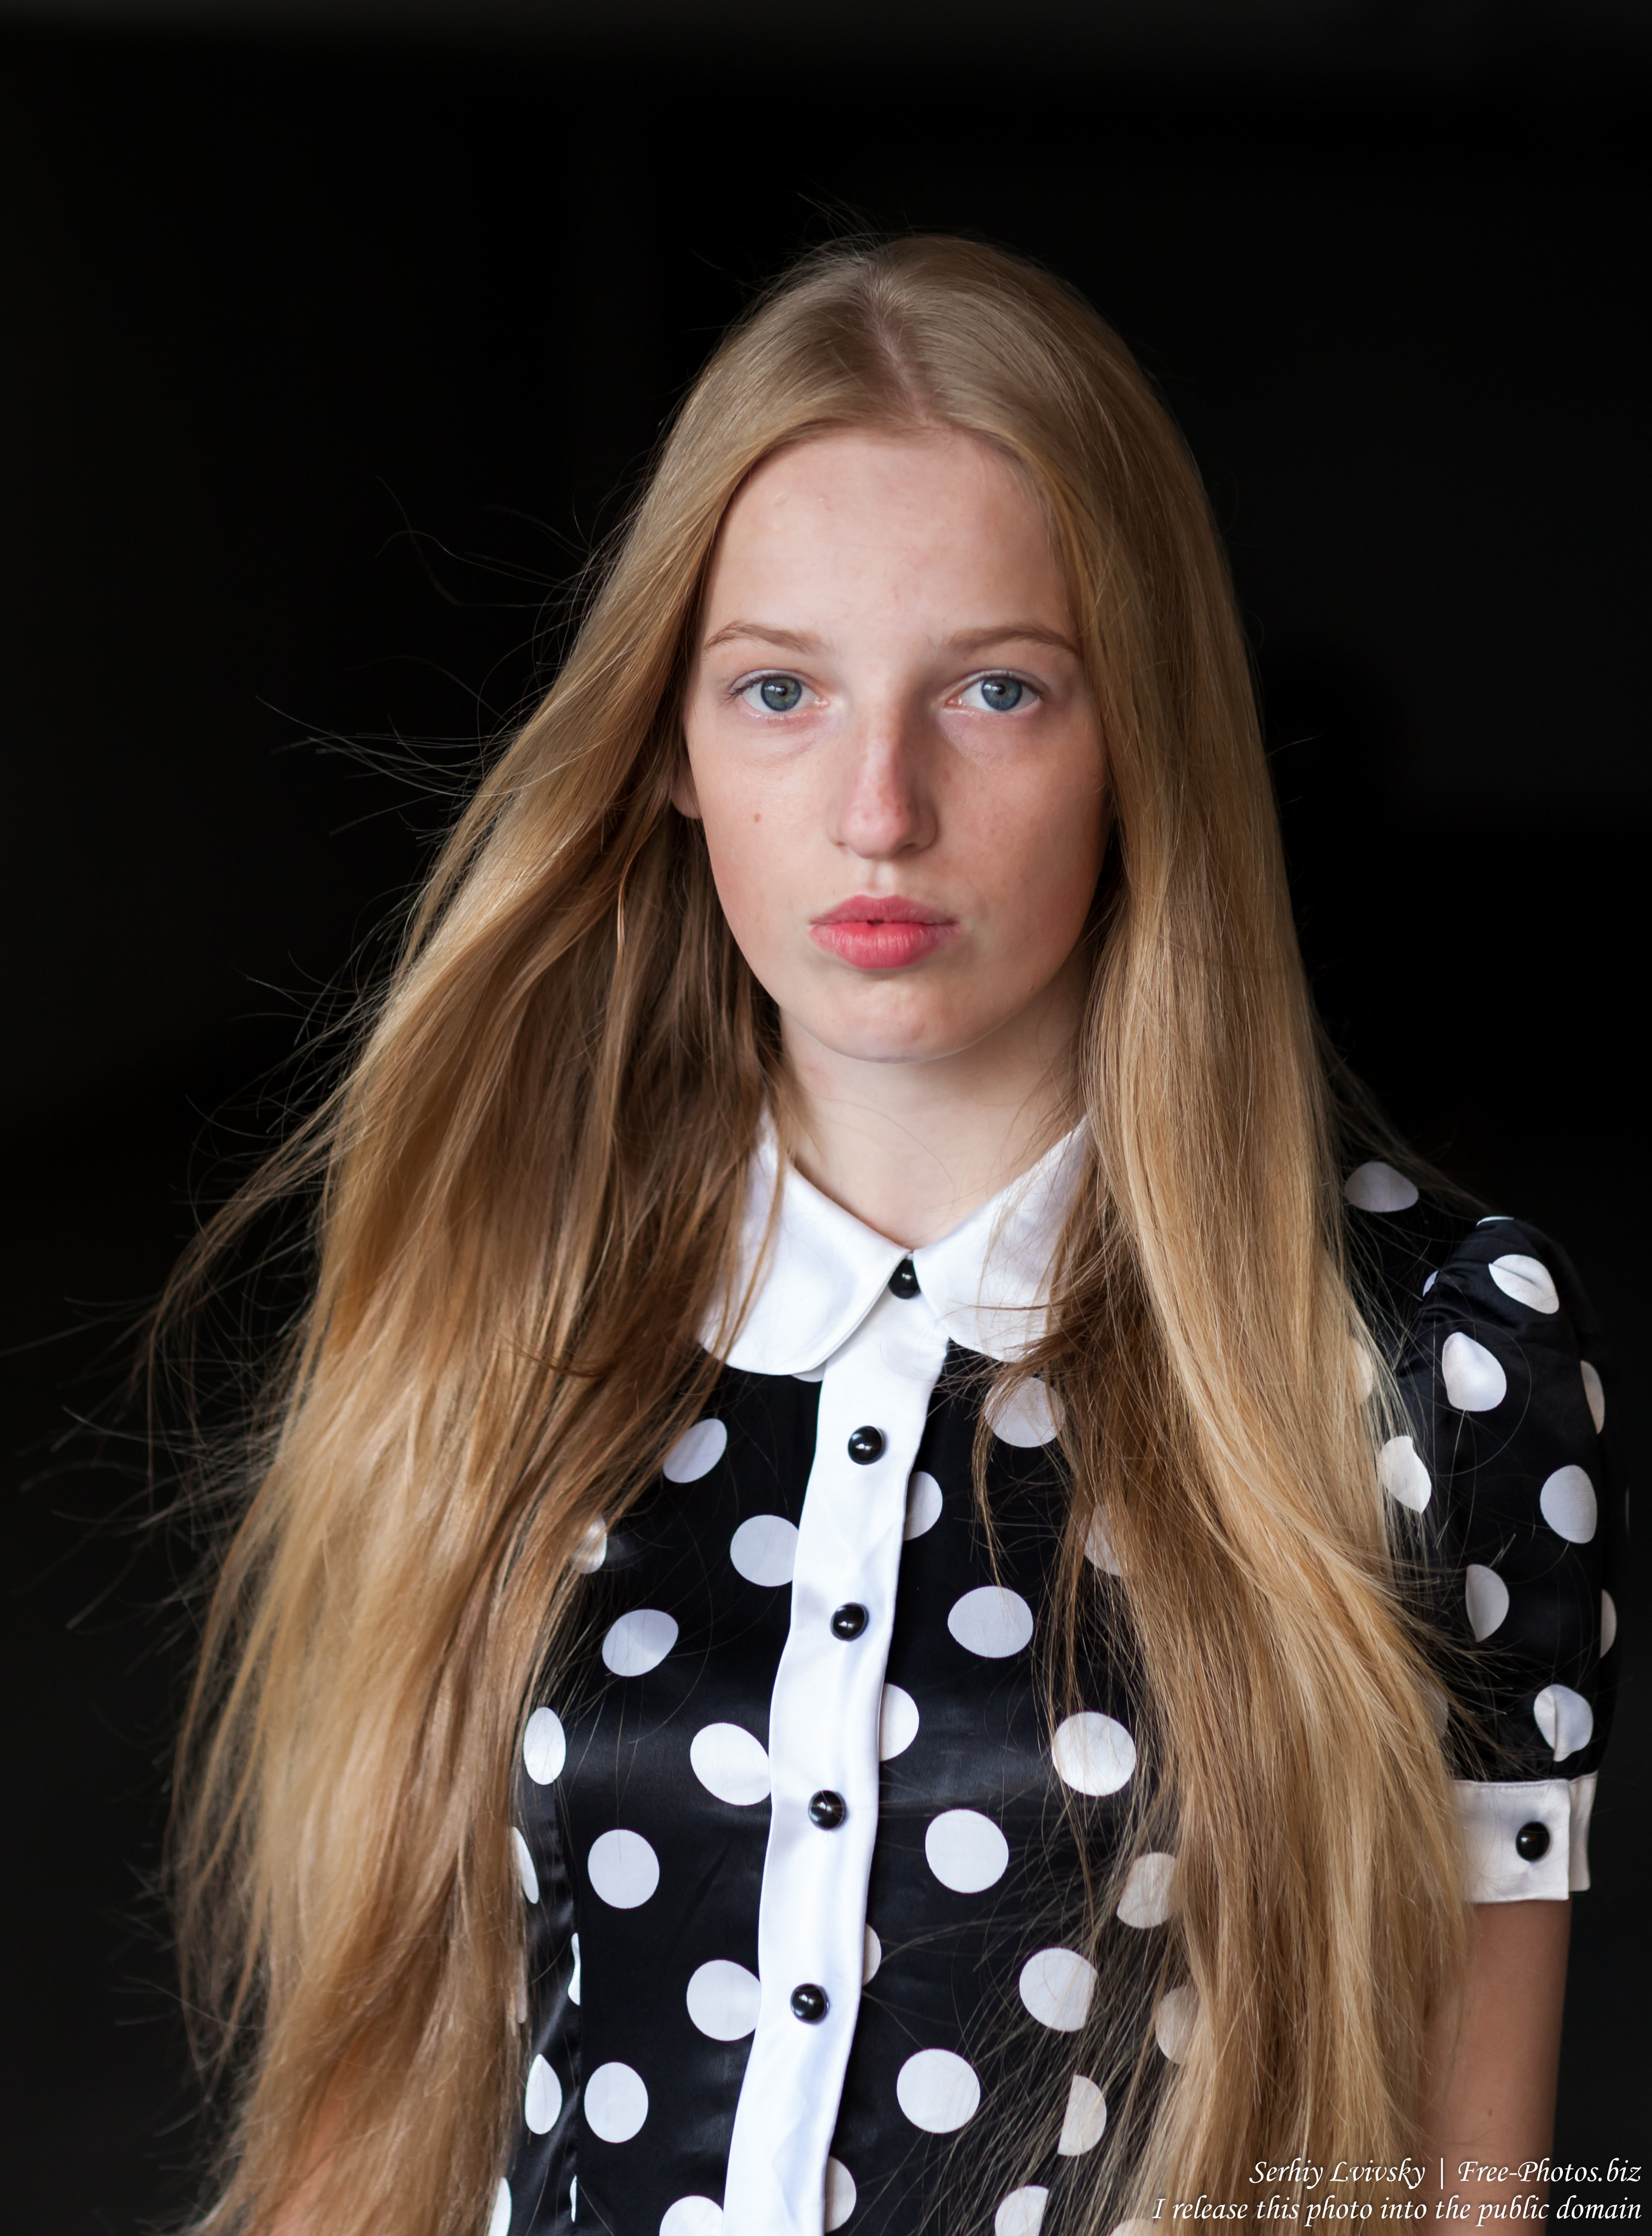 a 17-year-old Catholic natural blond girl photographed in September 2016 by Serhiy Lvivsky, picture 6